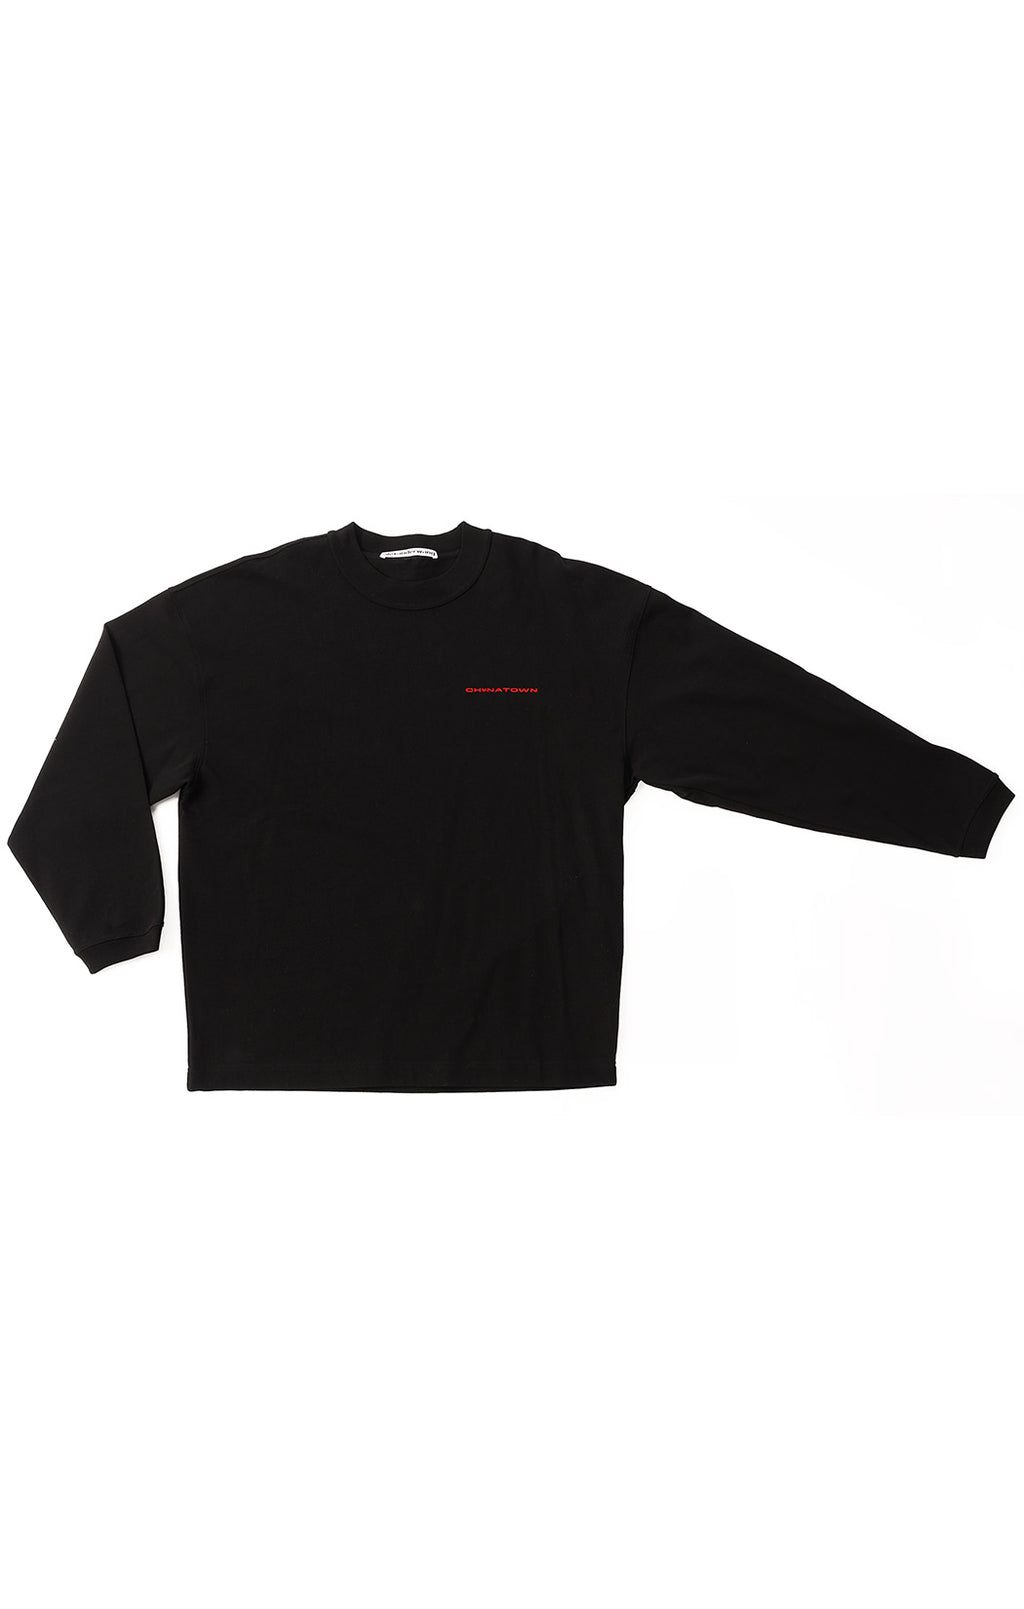 Front view of ALEXANDER WANG  Sweatshirt Size: Large